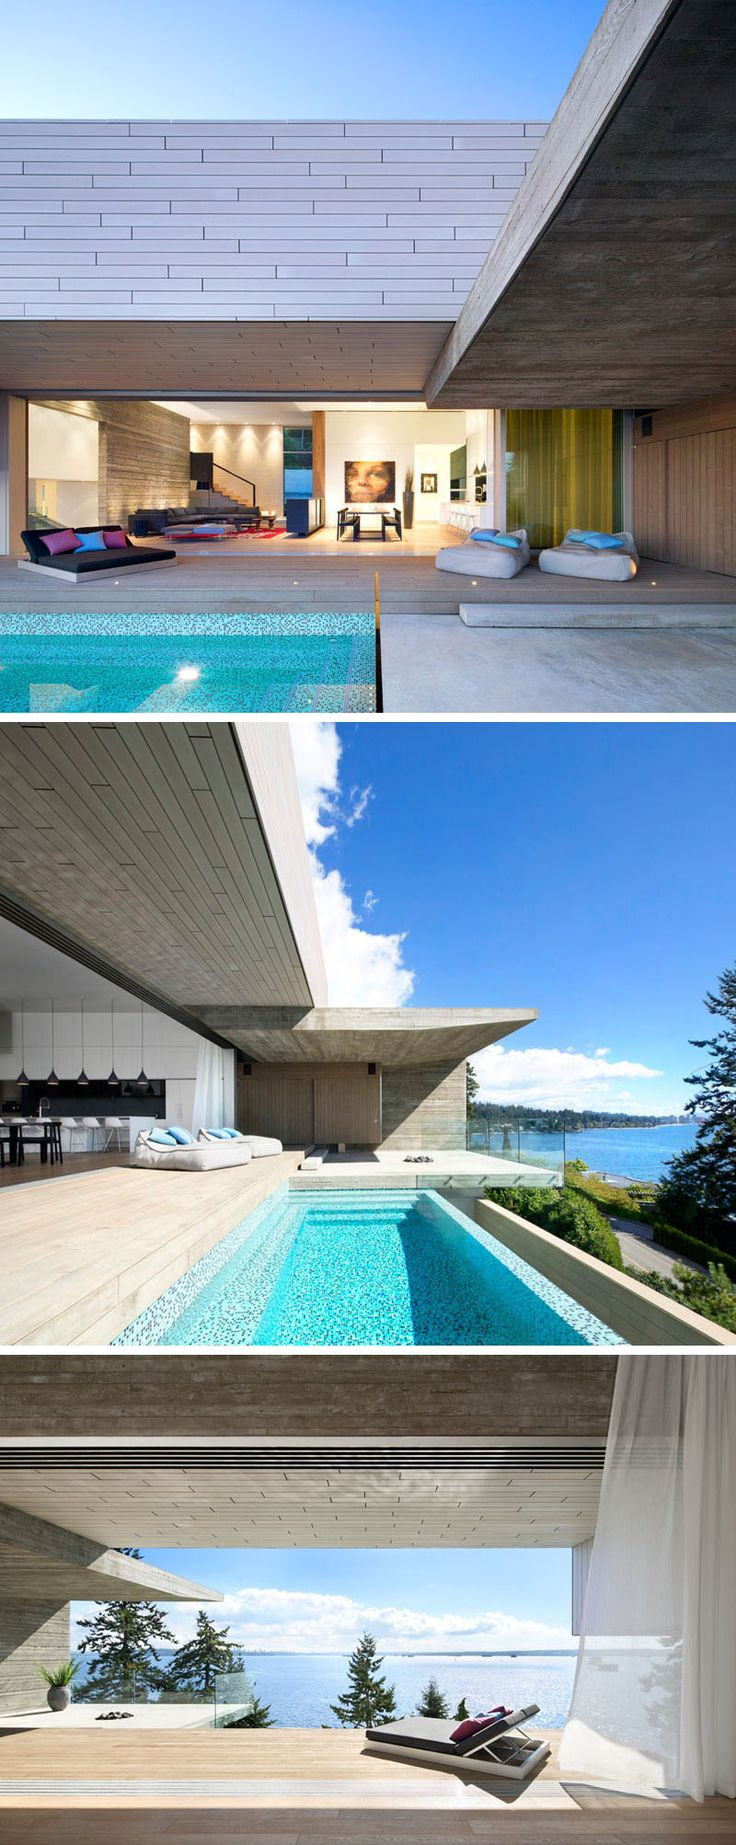 378 best Awesome Backyards images on Pinterest | House porch ...